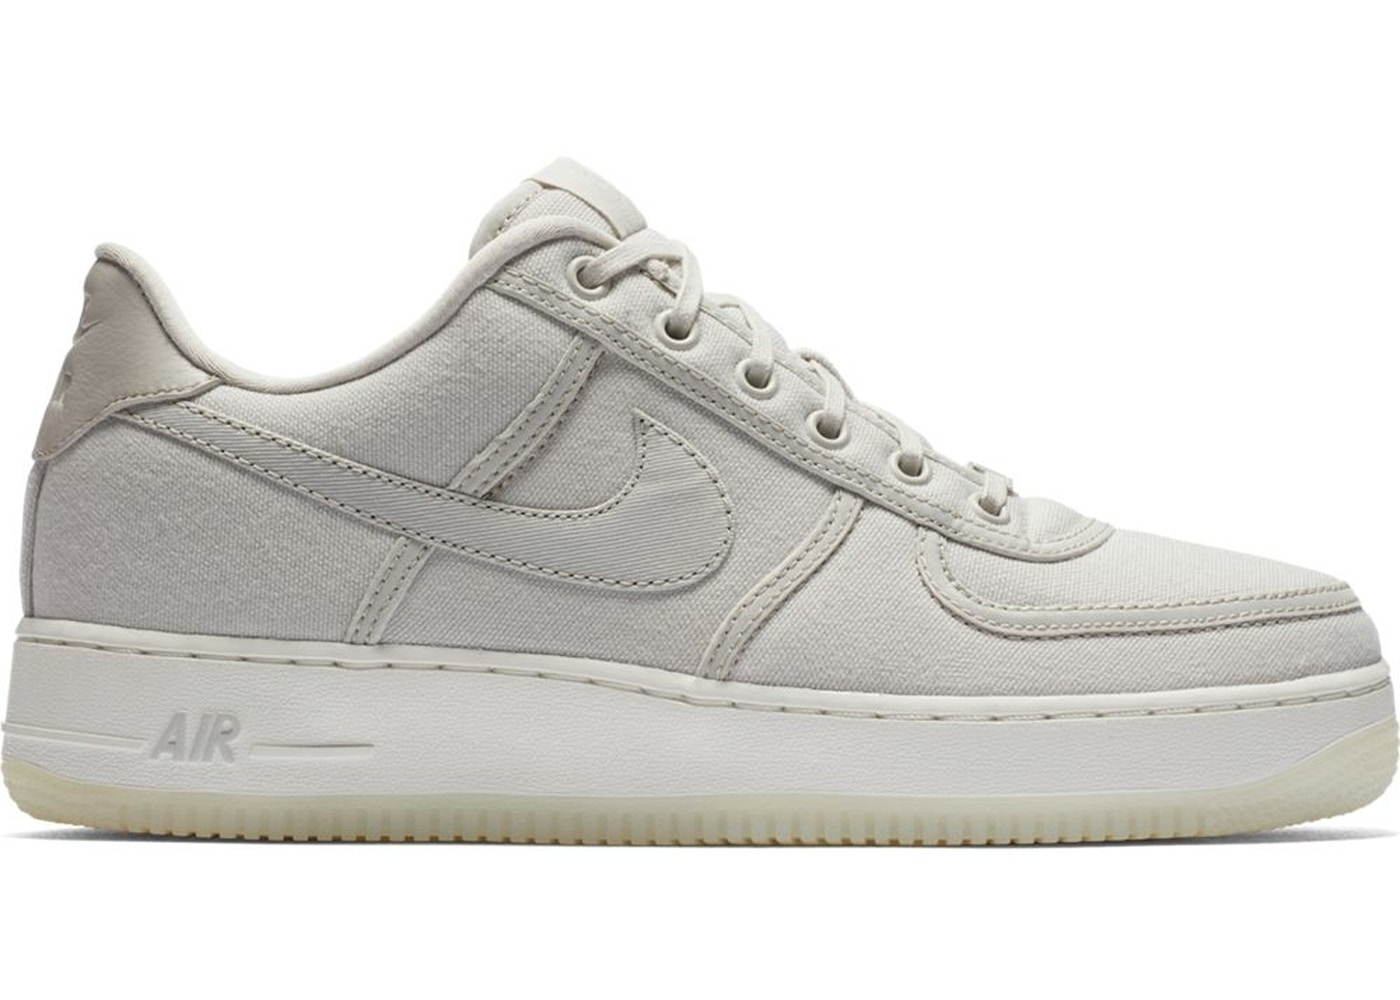 meet 555cb 5ecb5 Nike Air Force 1 Shoes - Lowest Ask